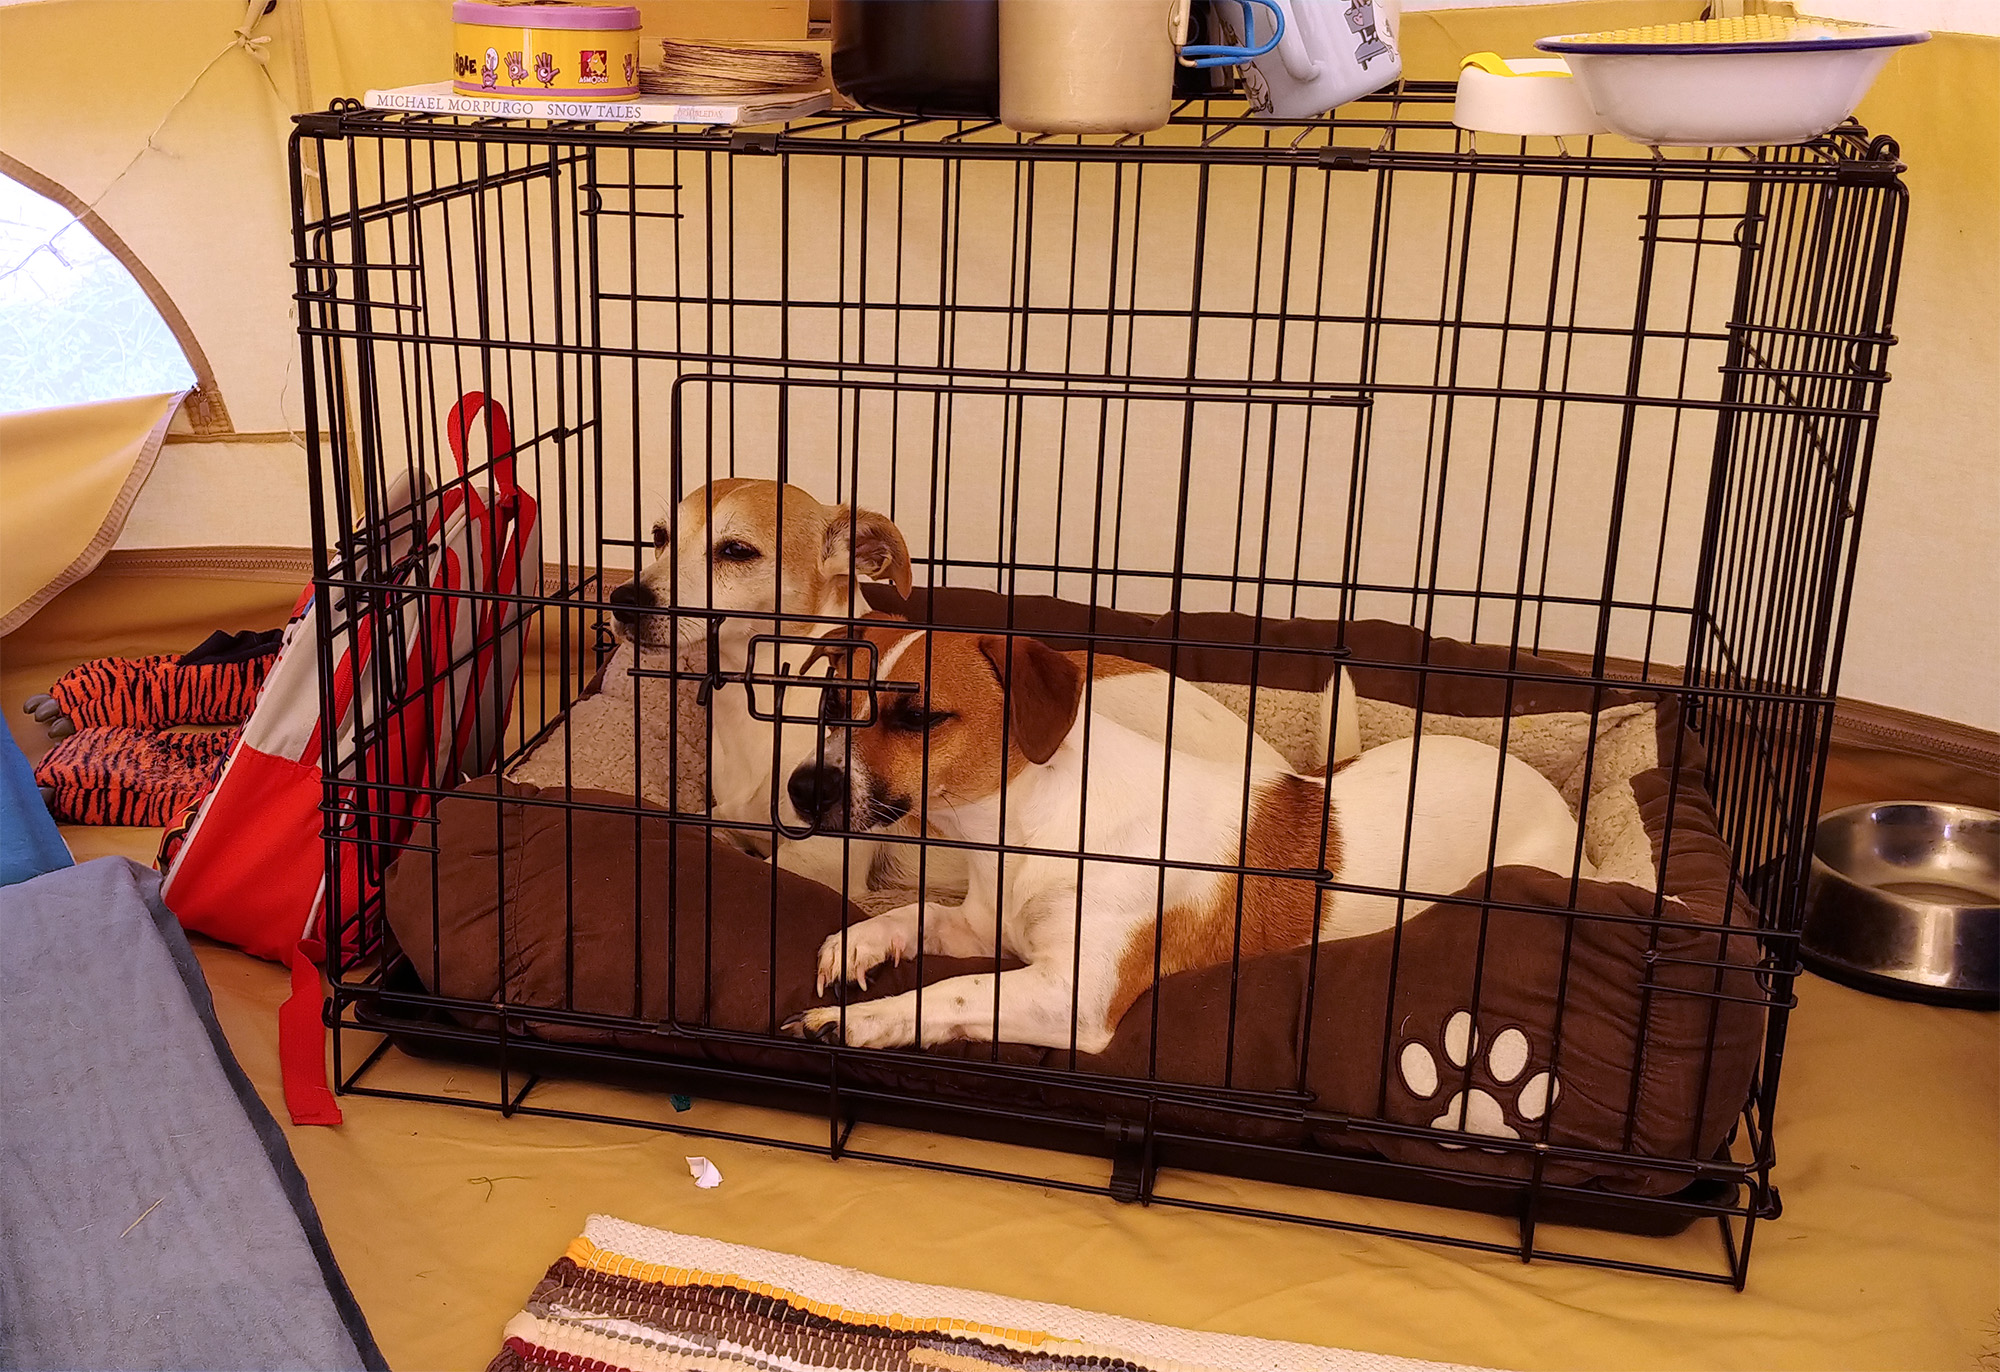 Having three over-excited dogs romping round and round a circular open plan tent isn't always ideal, so we brought our crate with us for the smaller two to have some quiet time in.